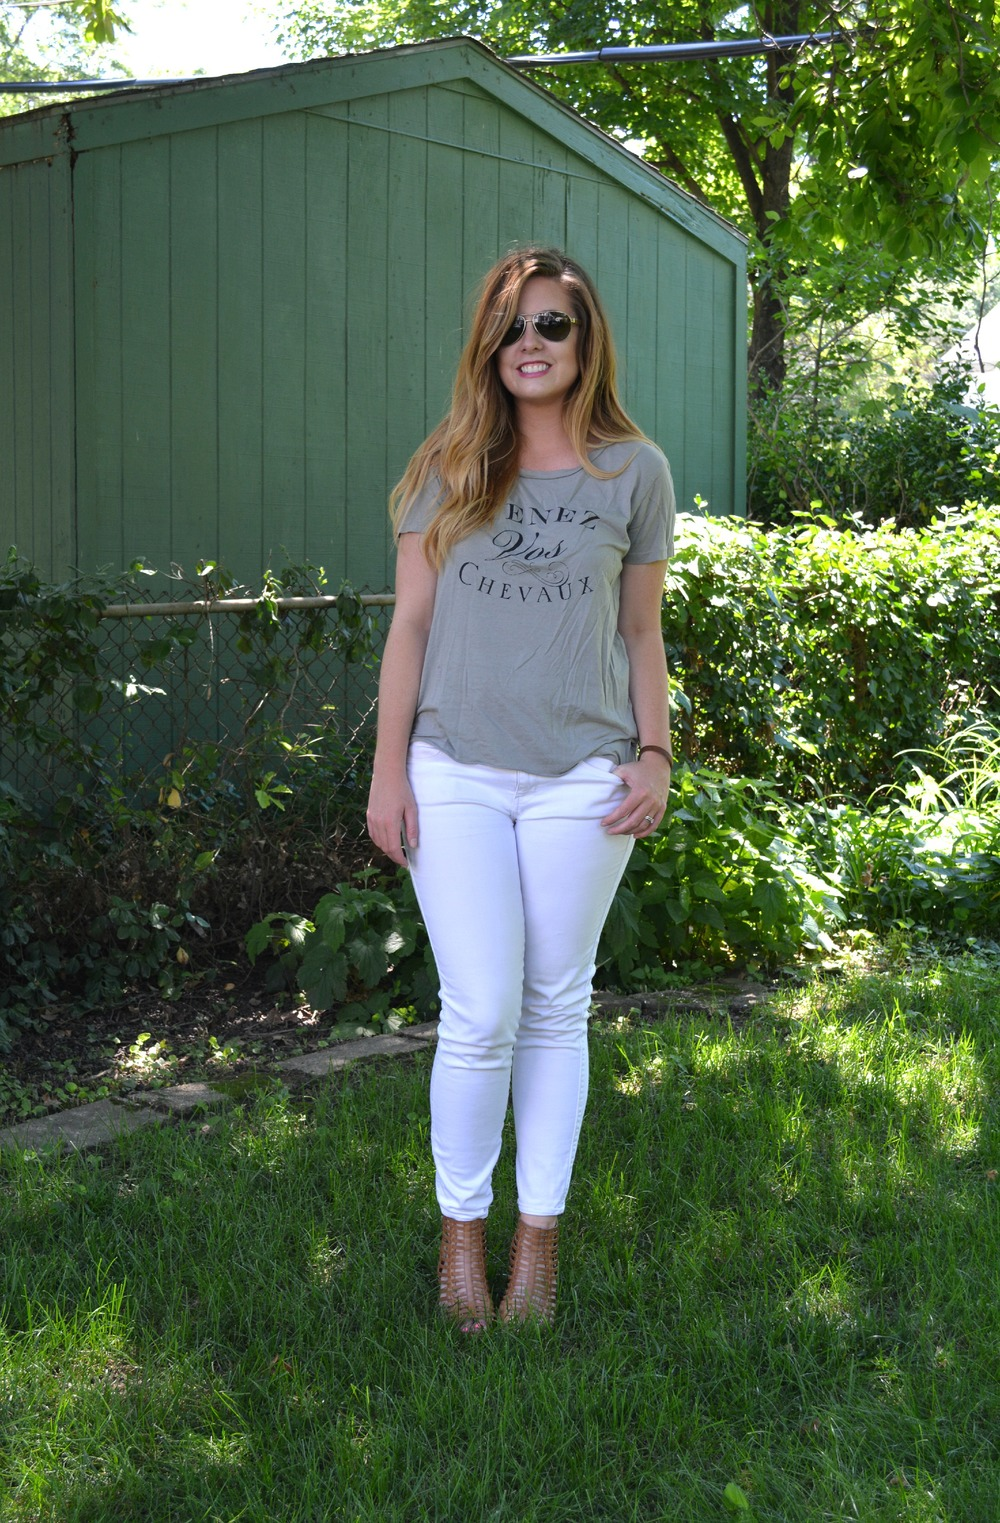 Bizi bee boutique tee on Sophisticaited.com